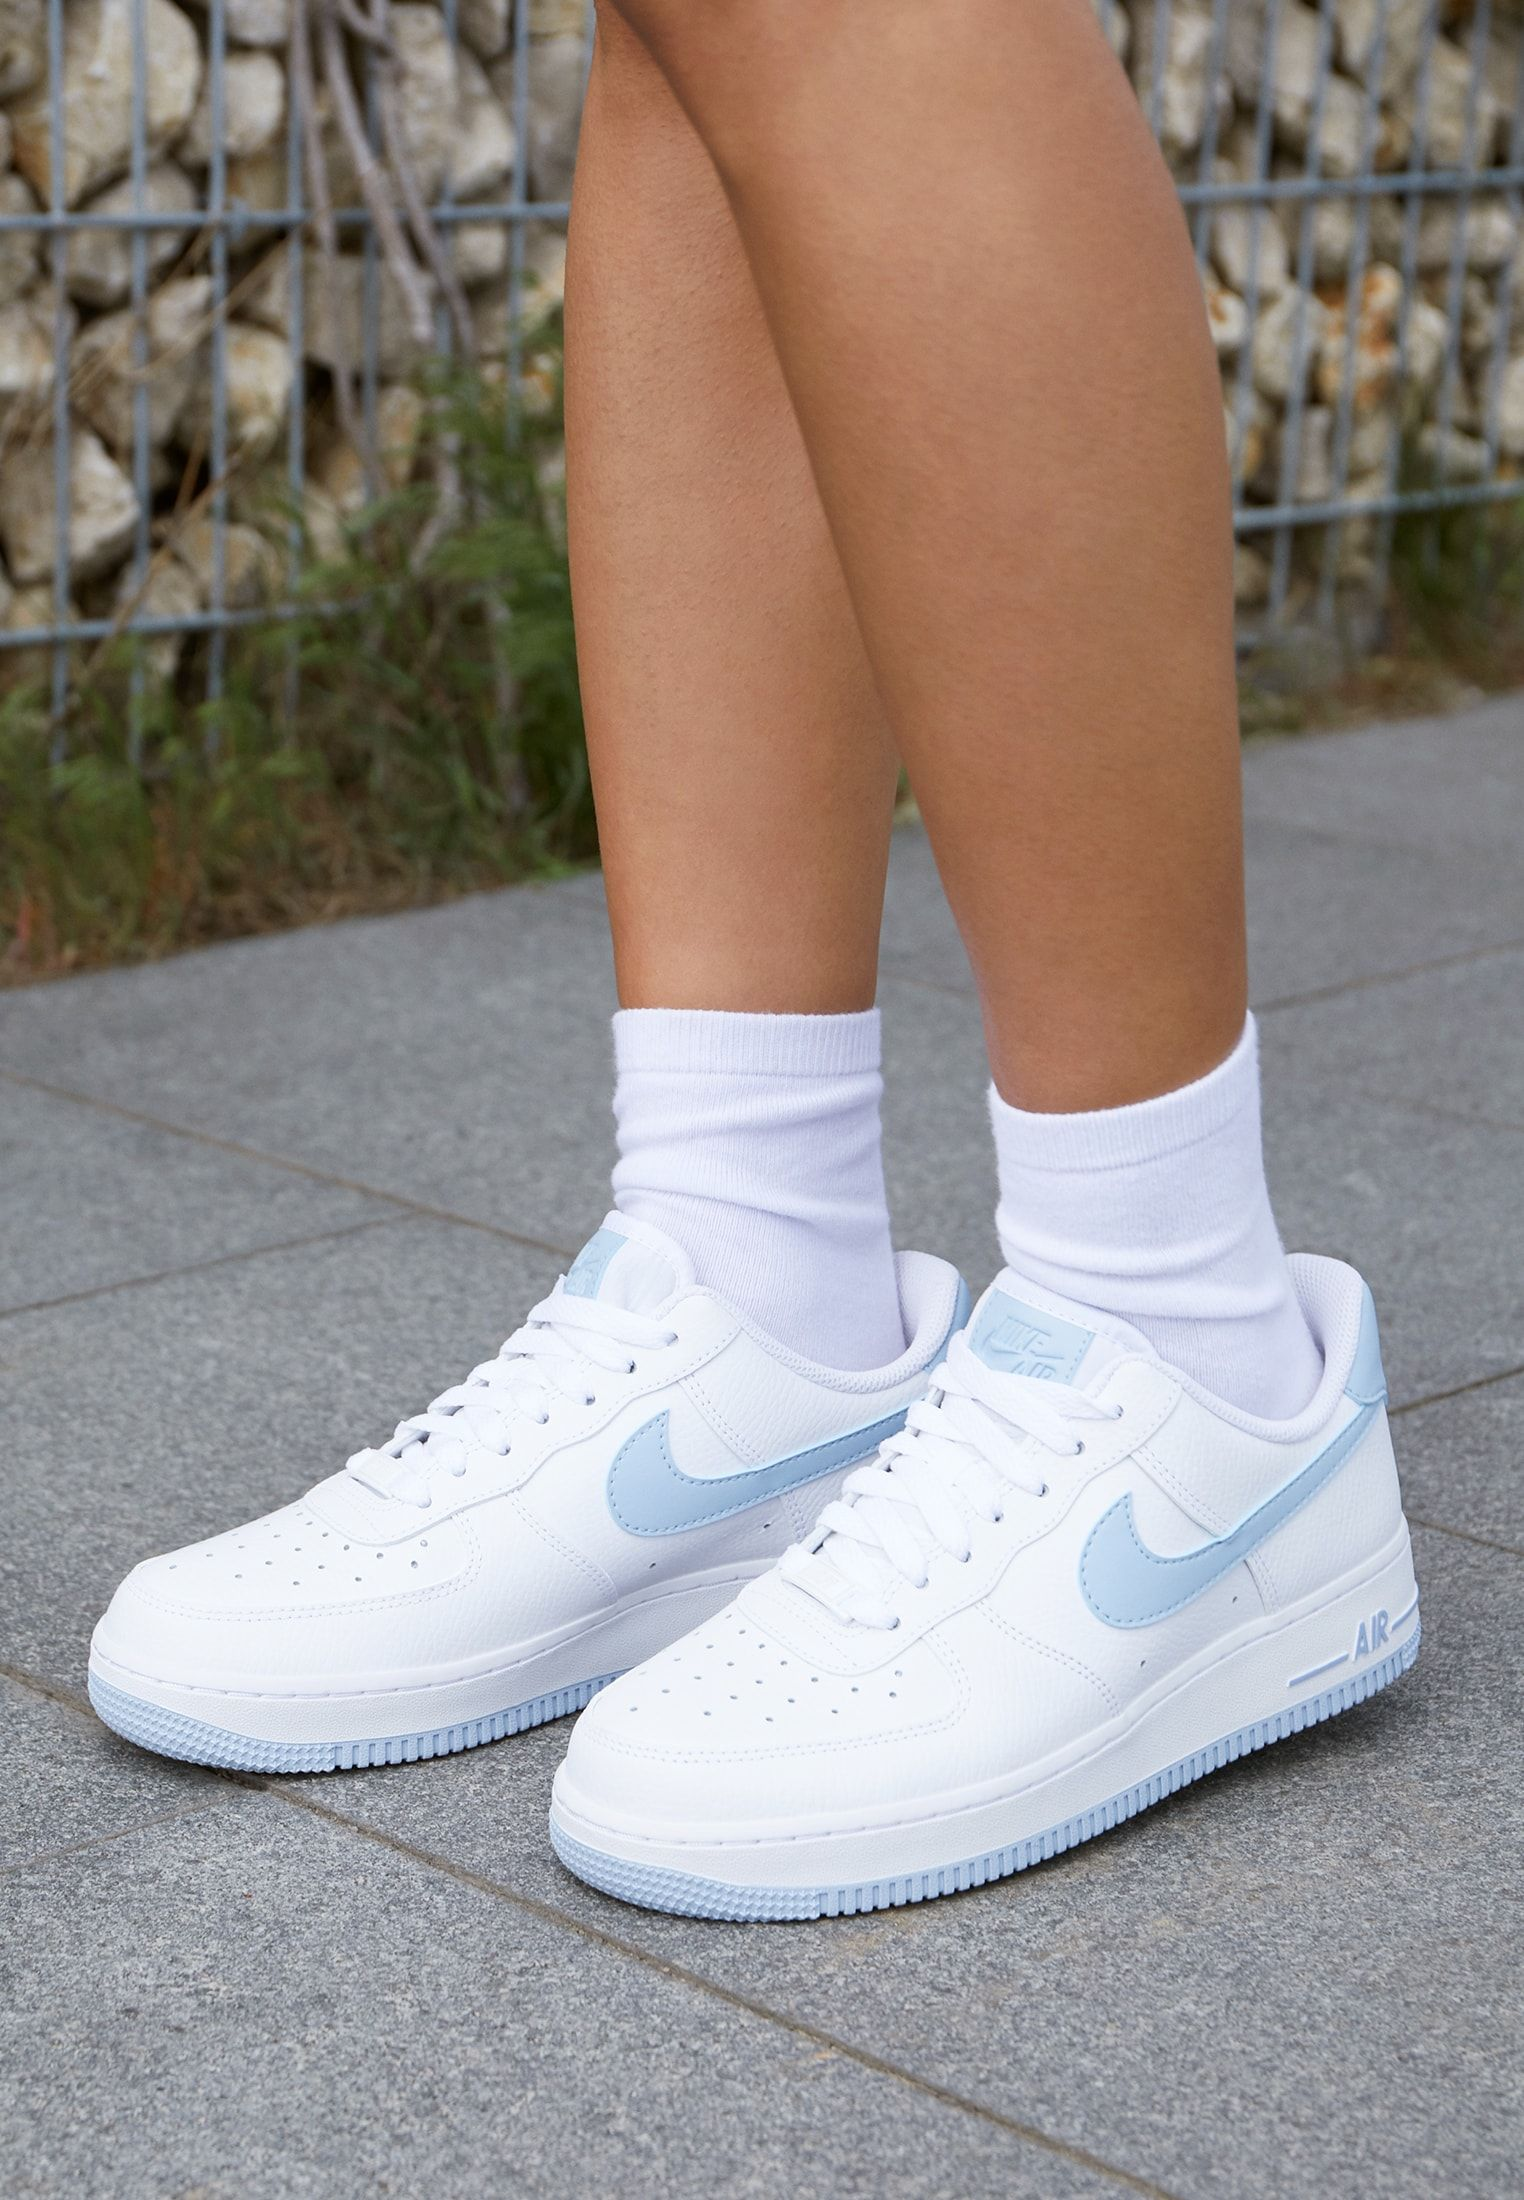 Nike Sportswear Air Force 1 07 Sneakers Laag White Light Armory Blue Zalando Nl Luchtmacht Sneakers Mode Sneaker